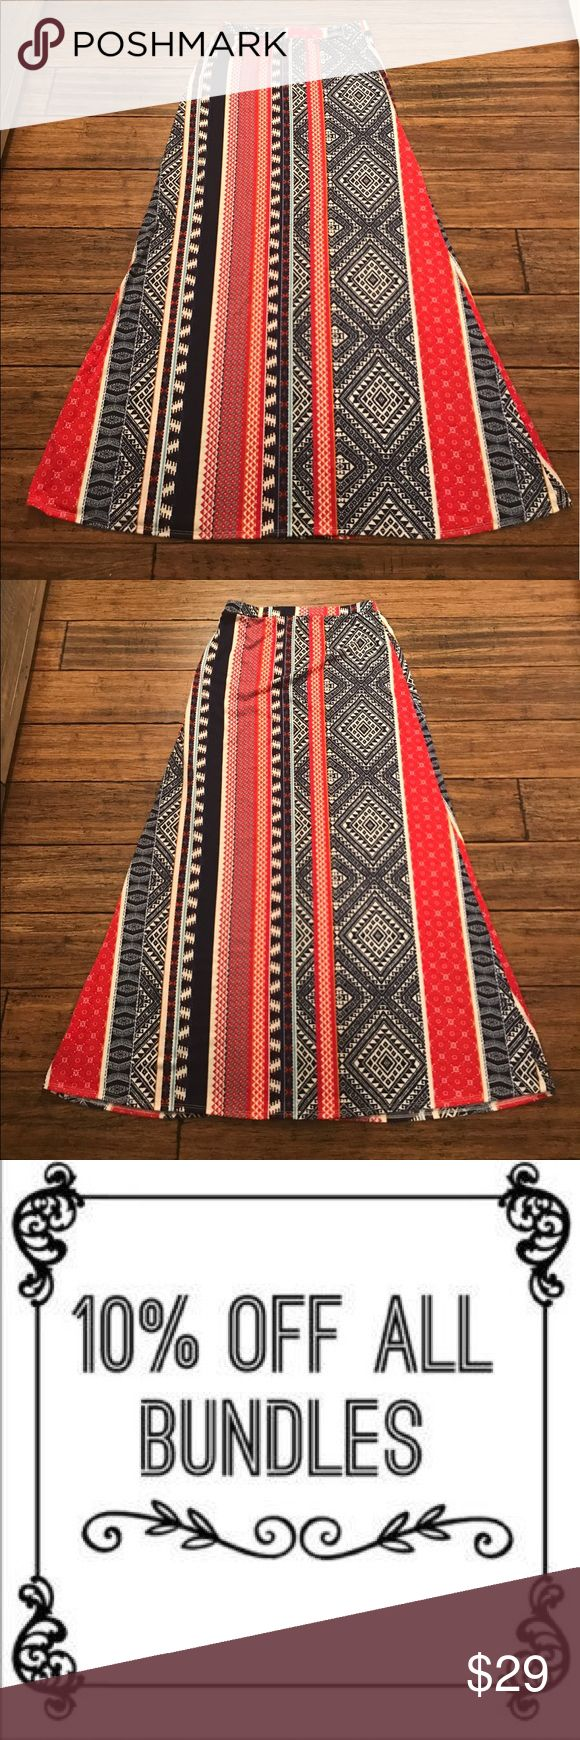 "Lily Star Tribal Maxi Skirt Lily Star tribal maxi skirt. 95% polyester, 5% spandex. Approx. 13.5"" across waist, 19"" across hips, and 40.5"" long. Skirts Maxi"